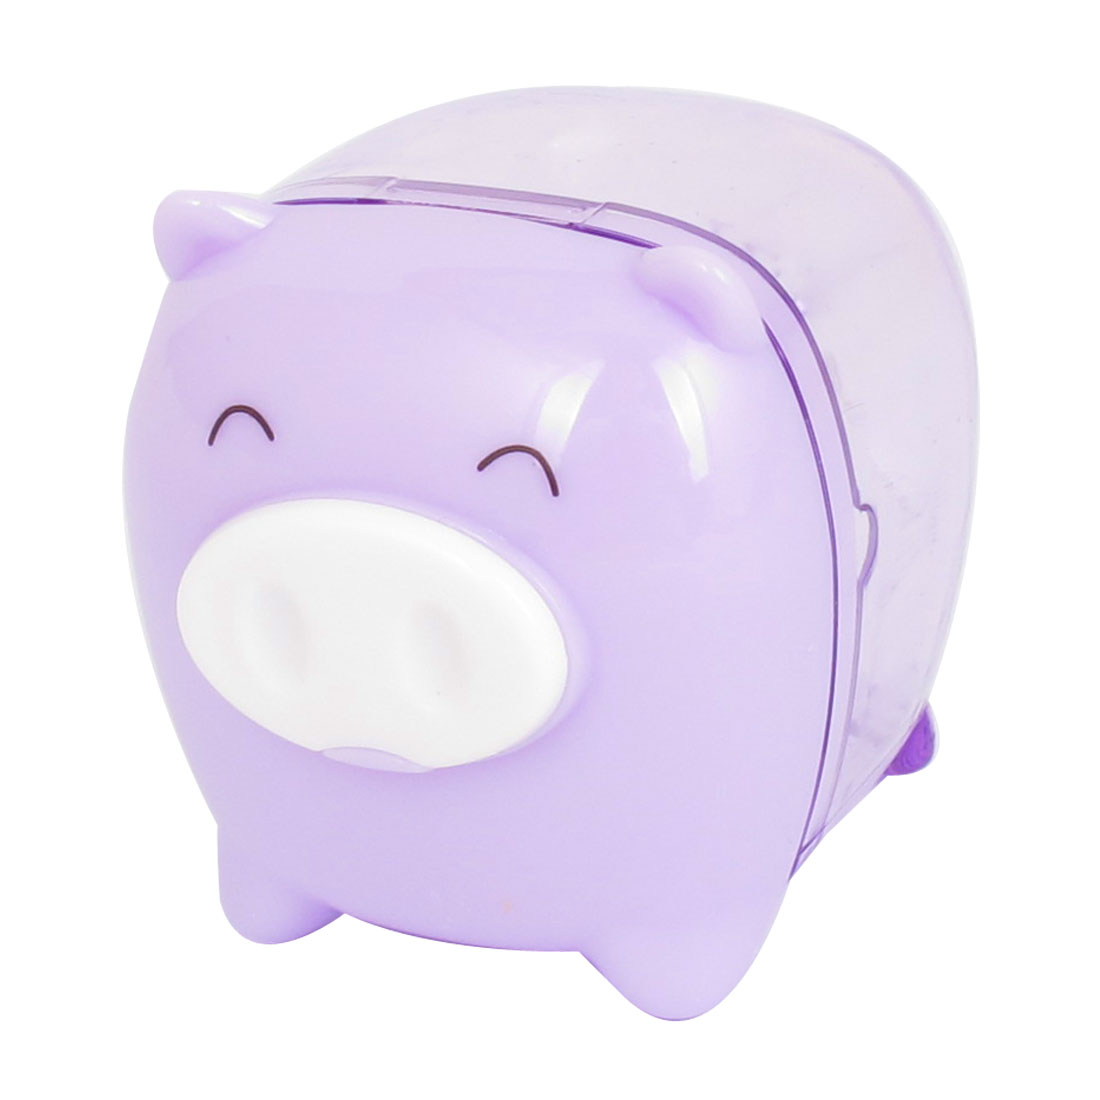 Purple Office Pig Design Plastic Housing Pencil Sharpener Tool for Students